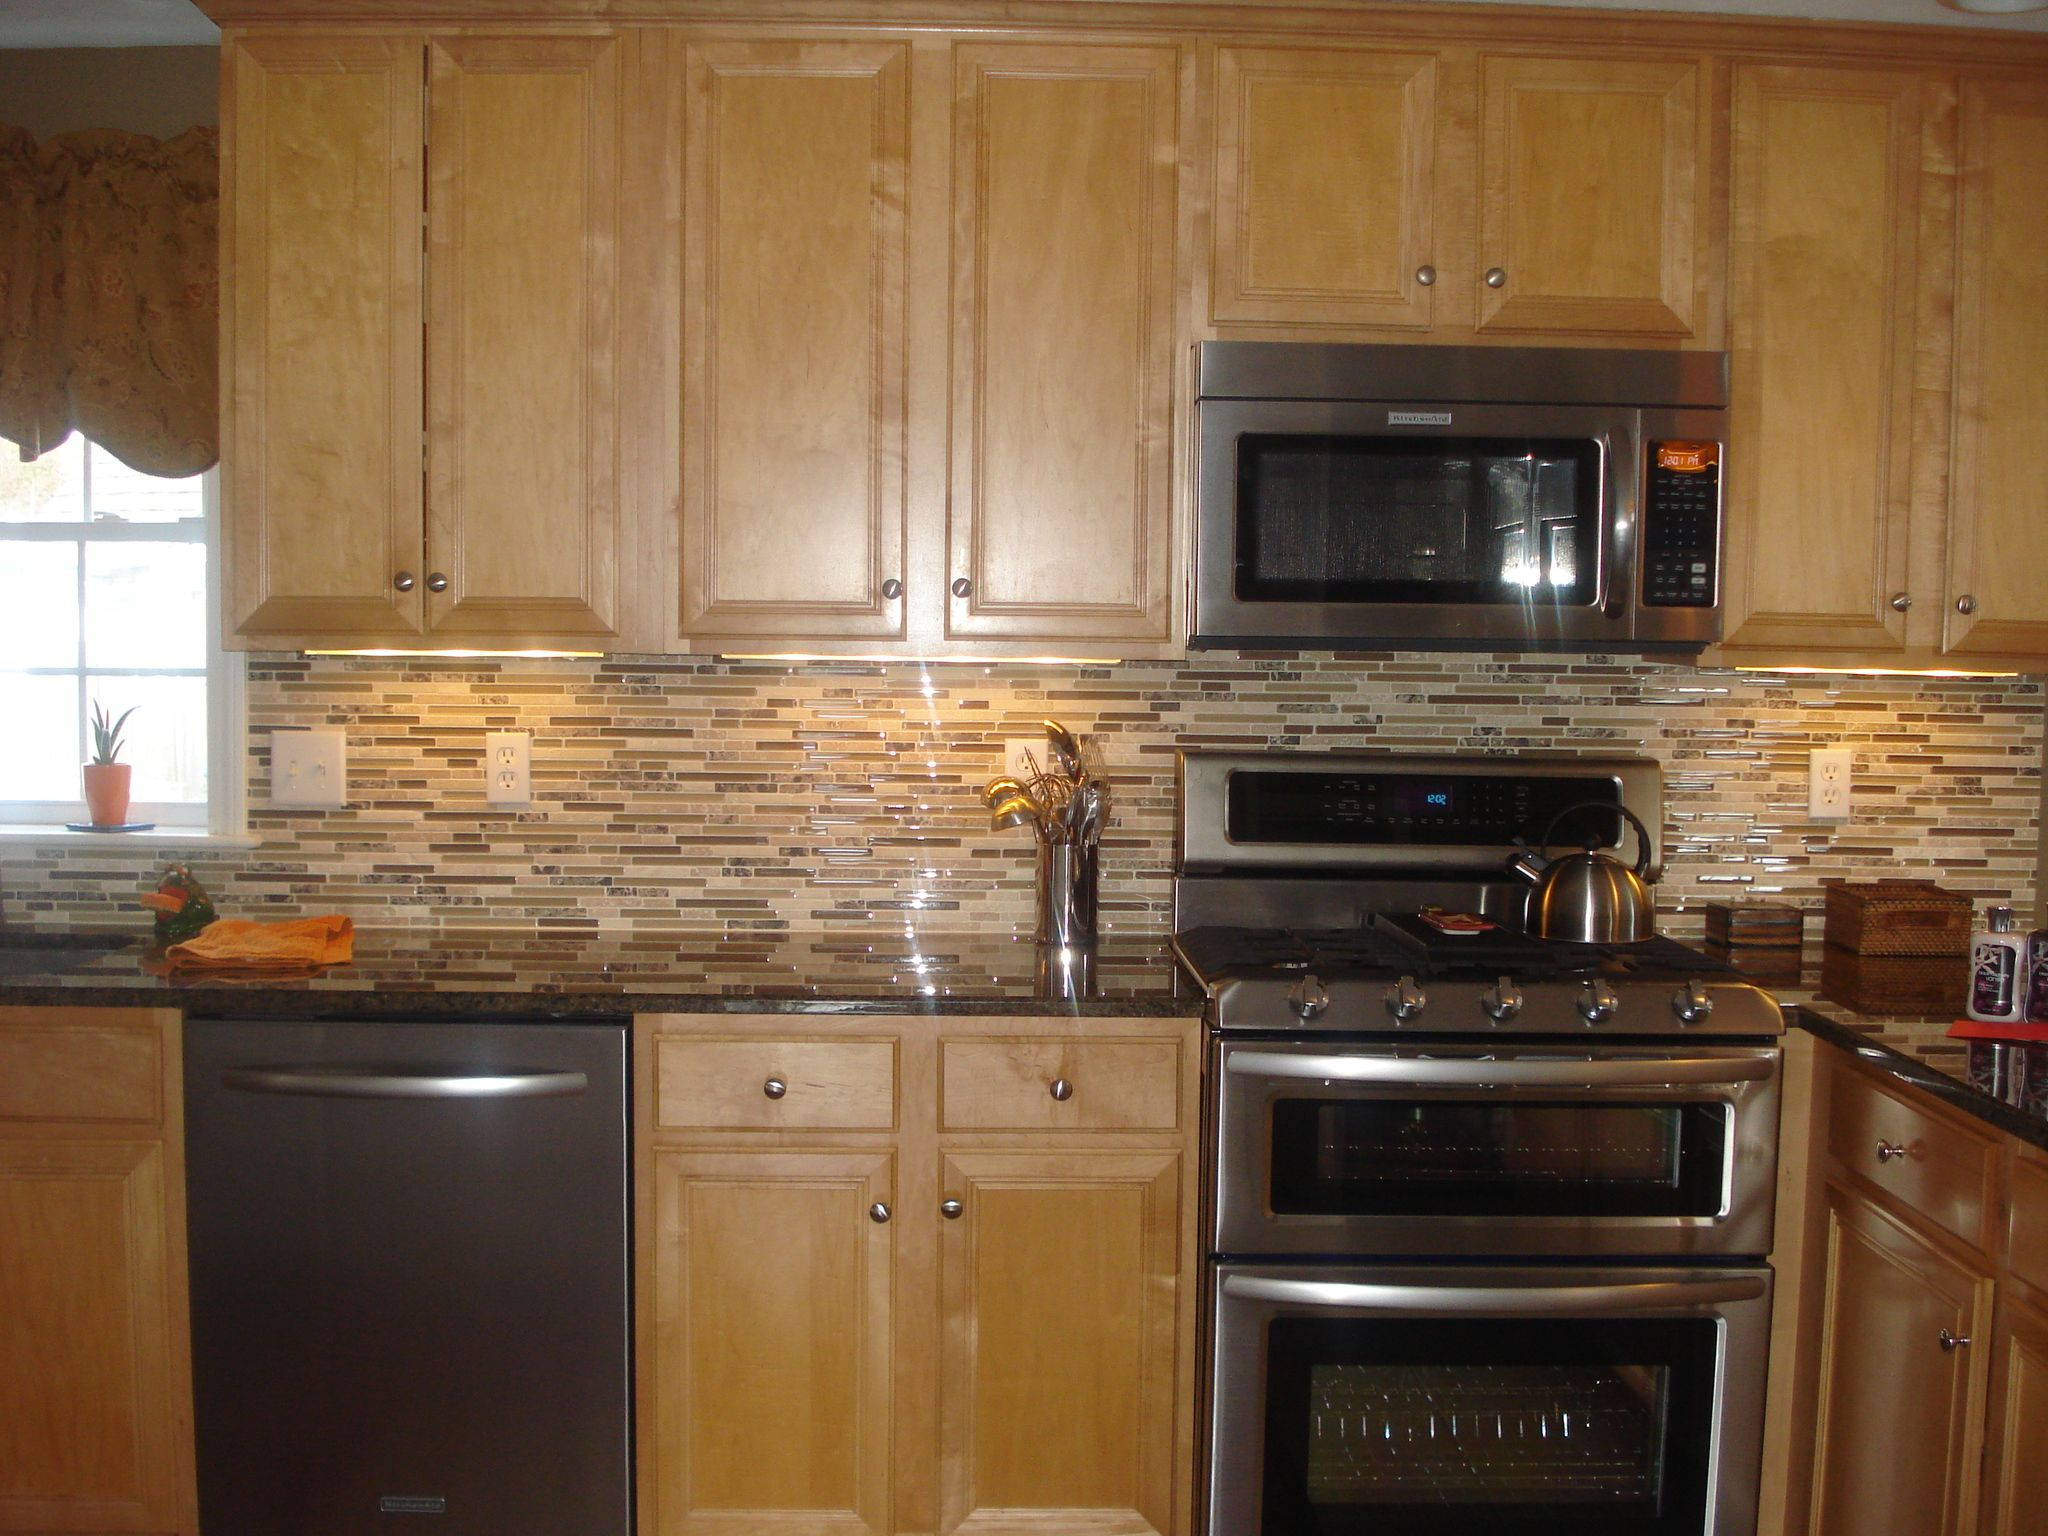 Kitchen Design Ideas With Oak Cabinets backsplash glass tile brown with brown cabinets |  backsplash